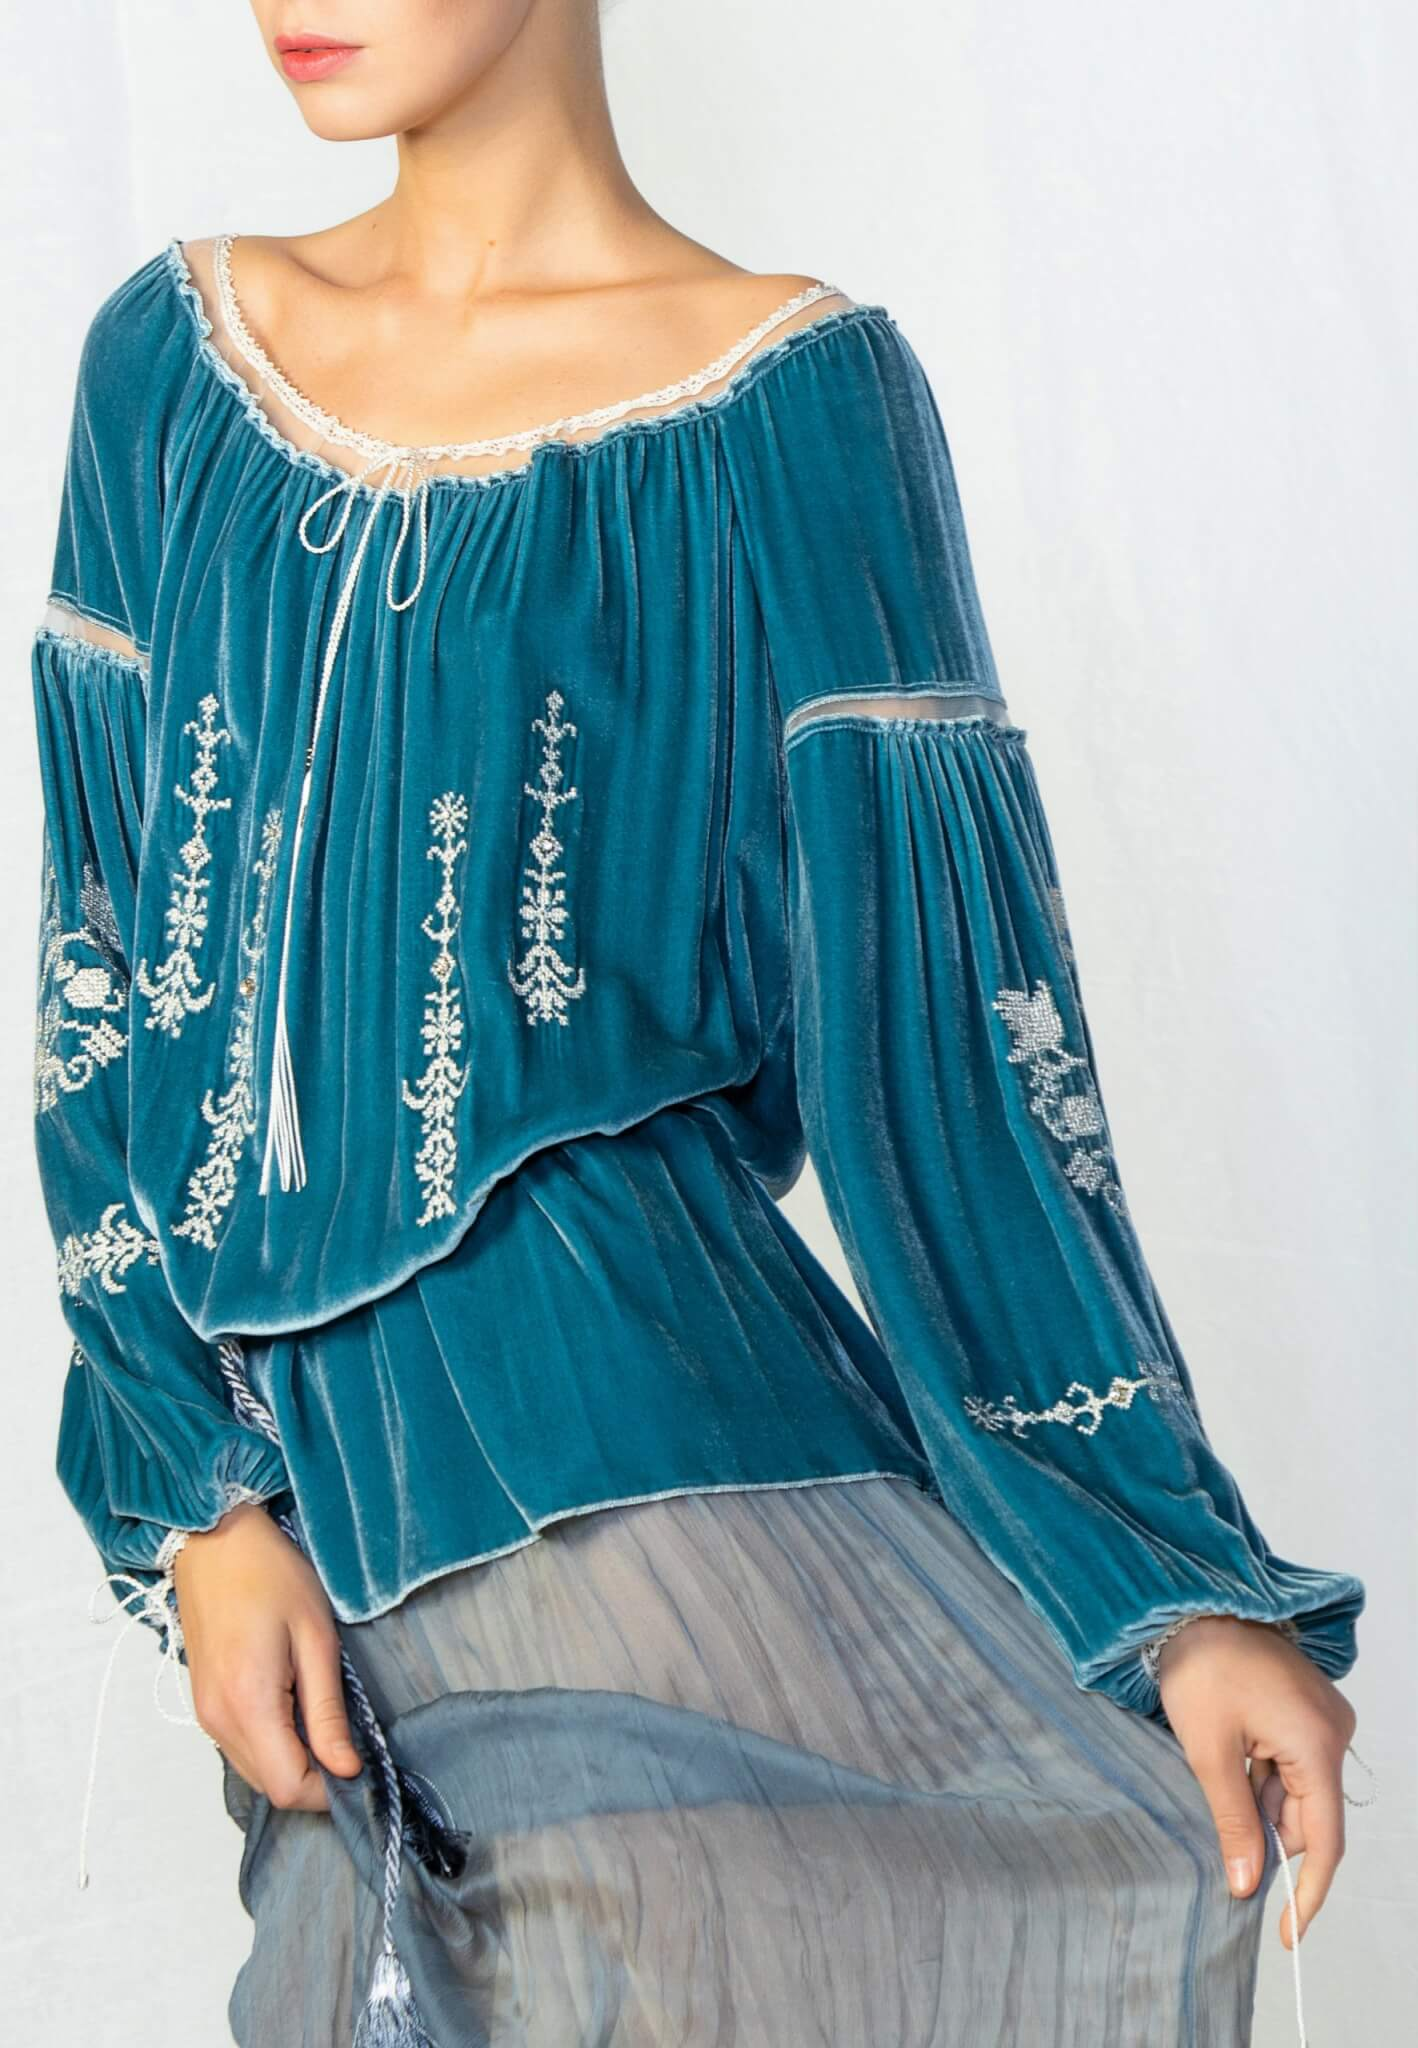 Turquoise velour blouse with embroidery